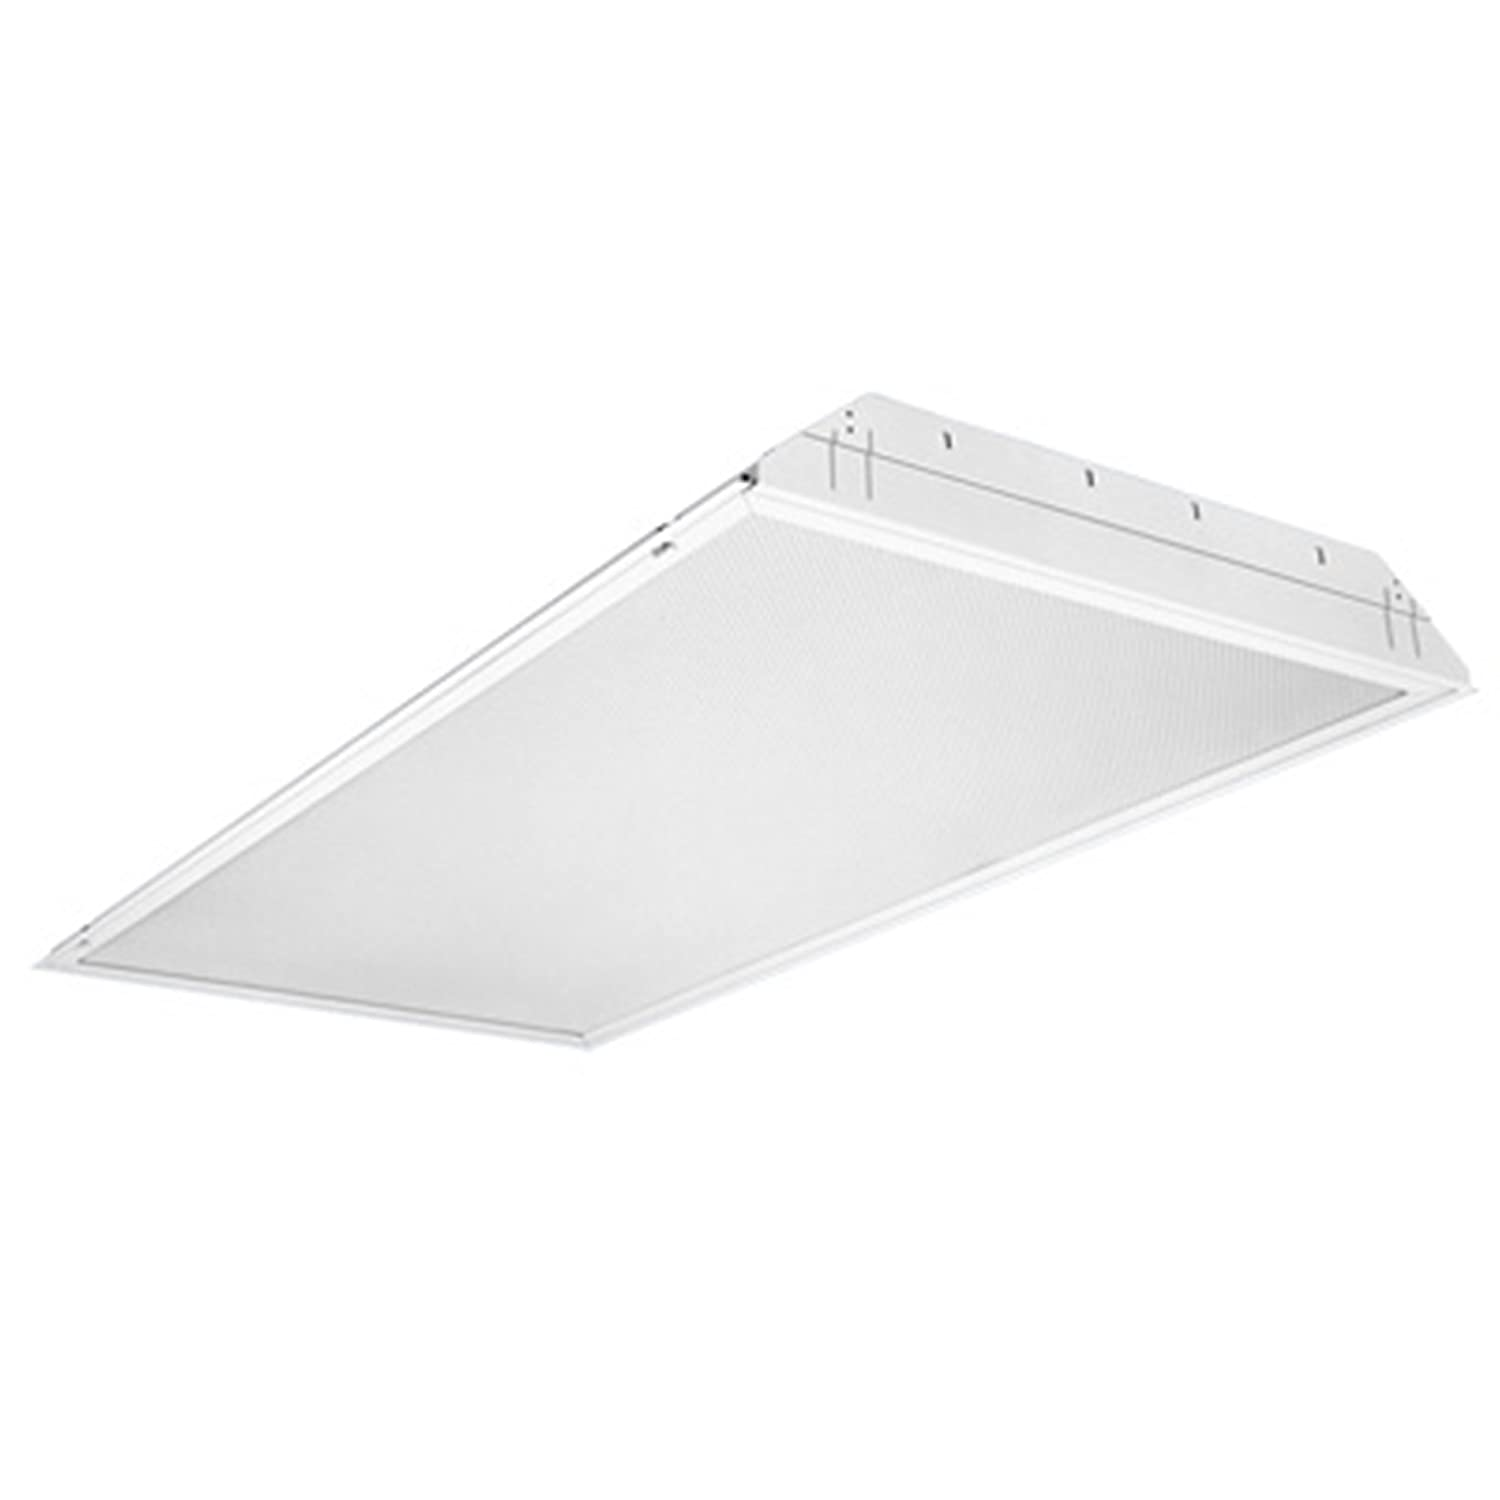 Lithonia lighting gt4 4 light fluorescent general purpose troffer lithonia lighting gt4 4 light fluorescent general purpose troffer 4 feet white track lighting fixtures amazon arubaitofo Choice Image